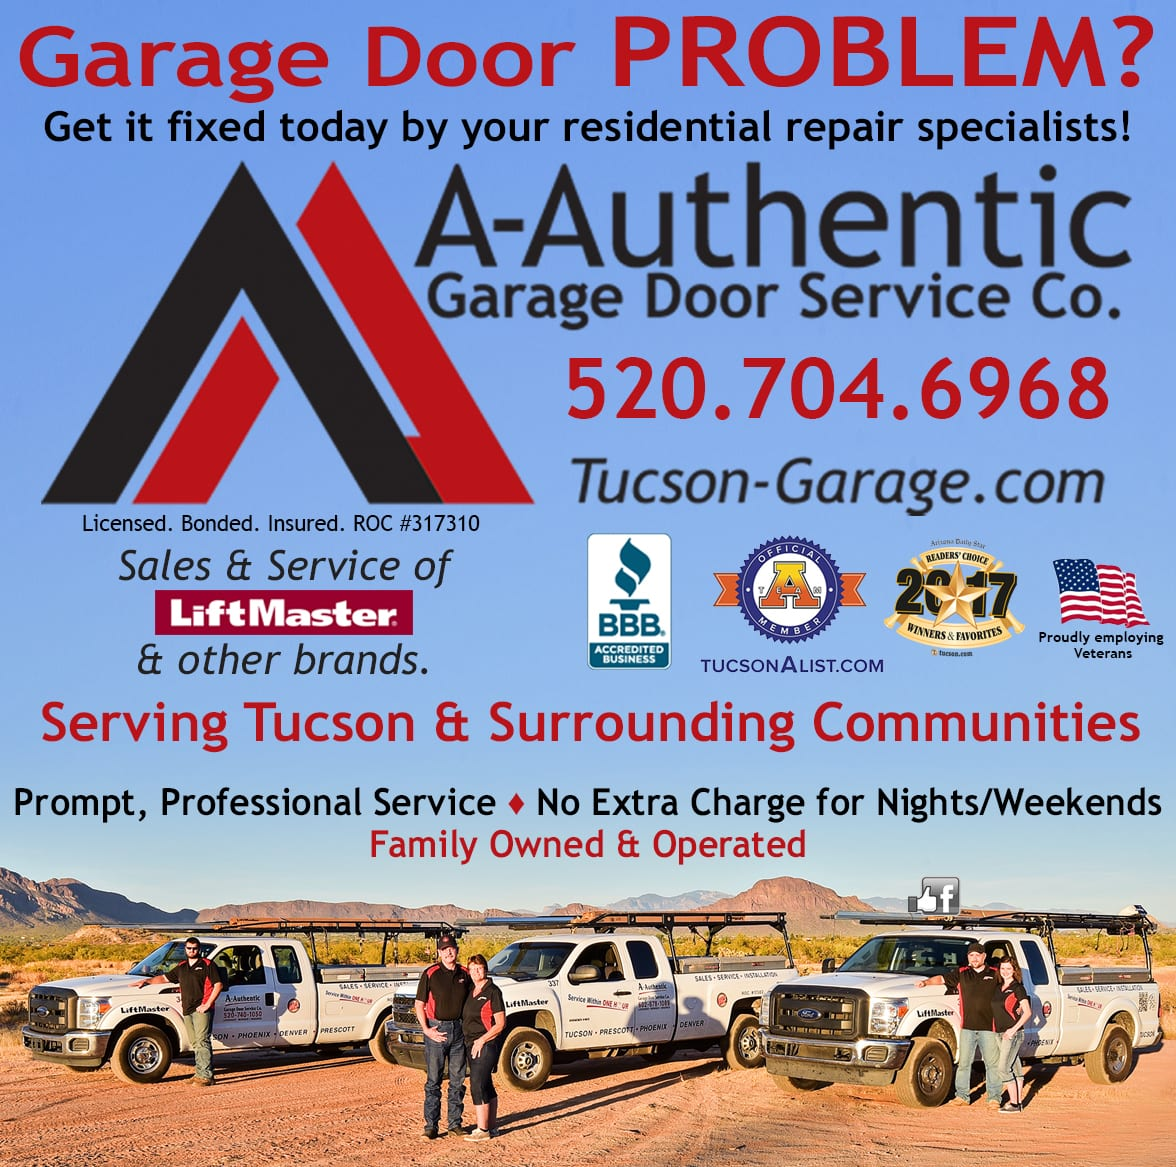 Garage Door Repair Tucson Marketing And Design Services For A Authentic In Tucson Az